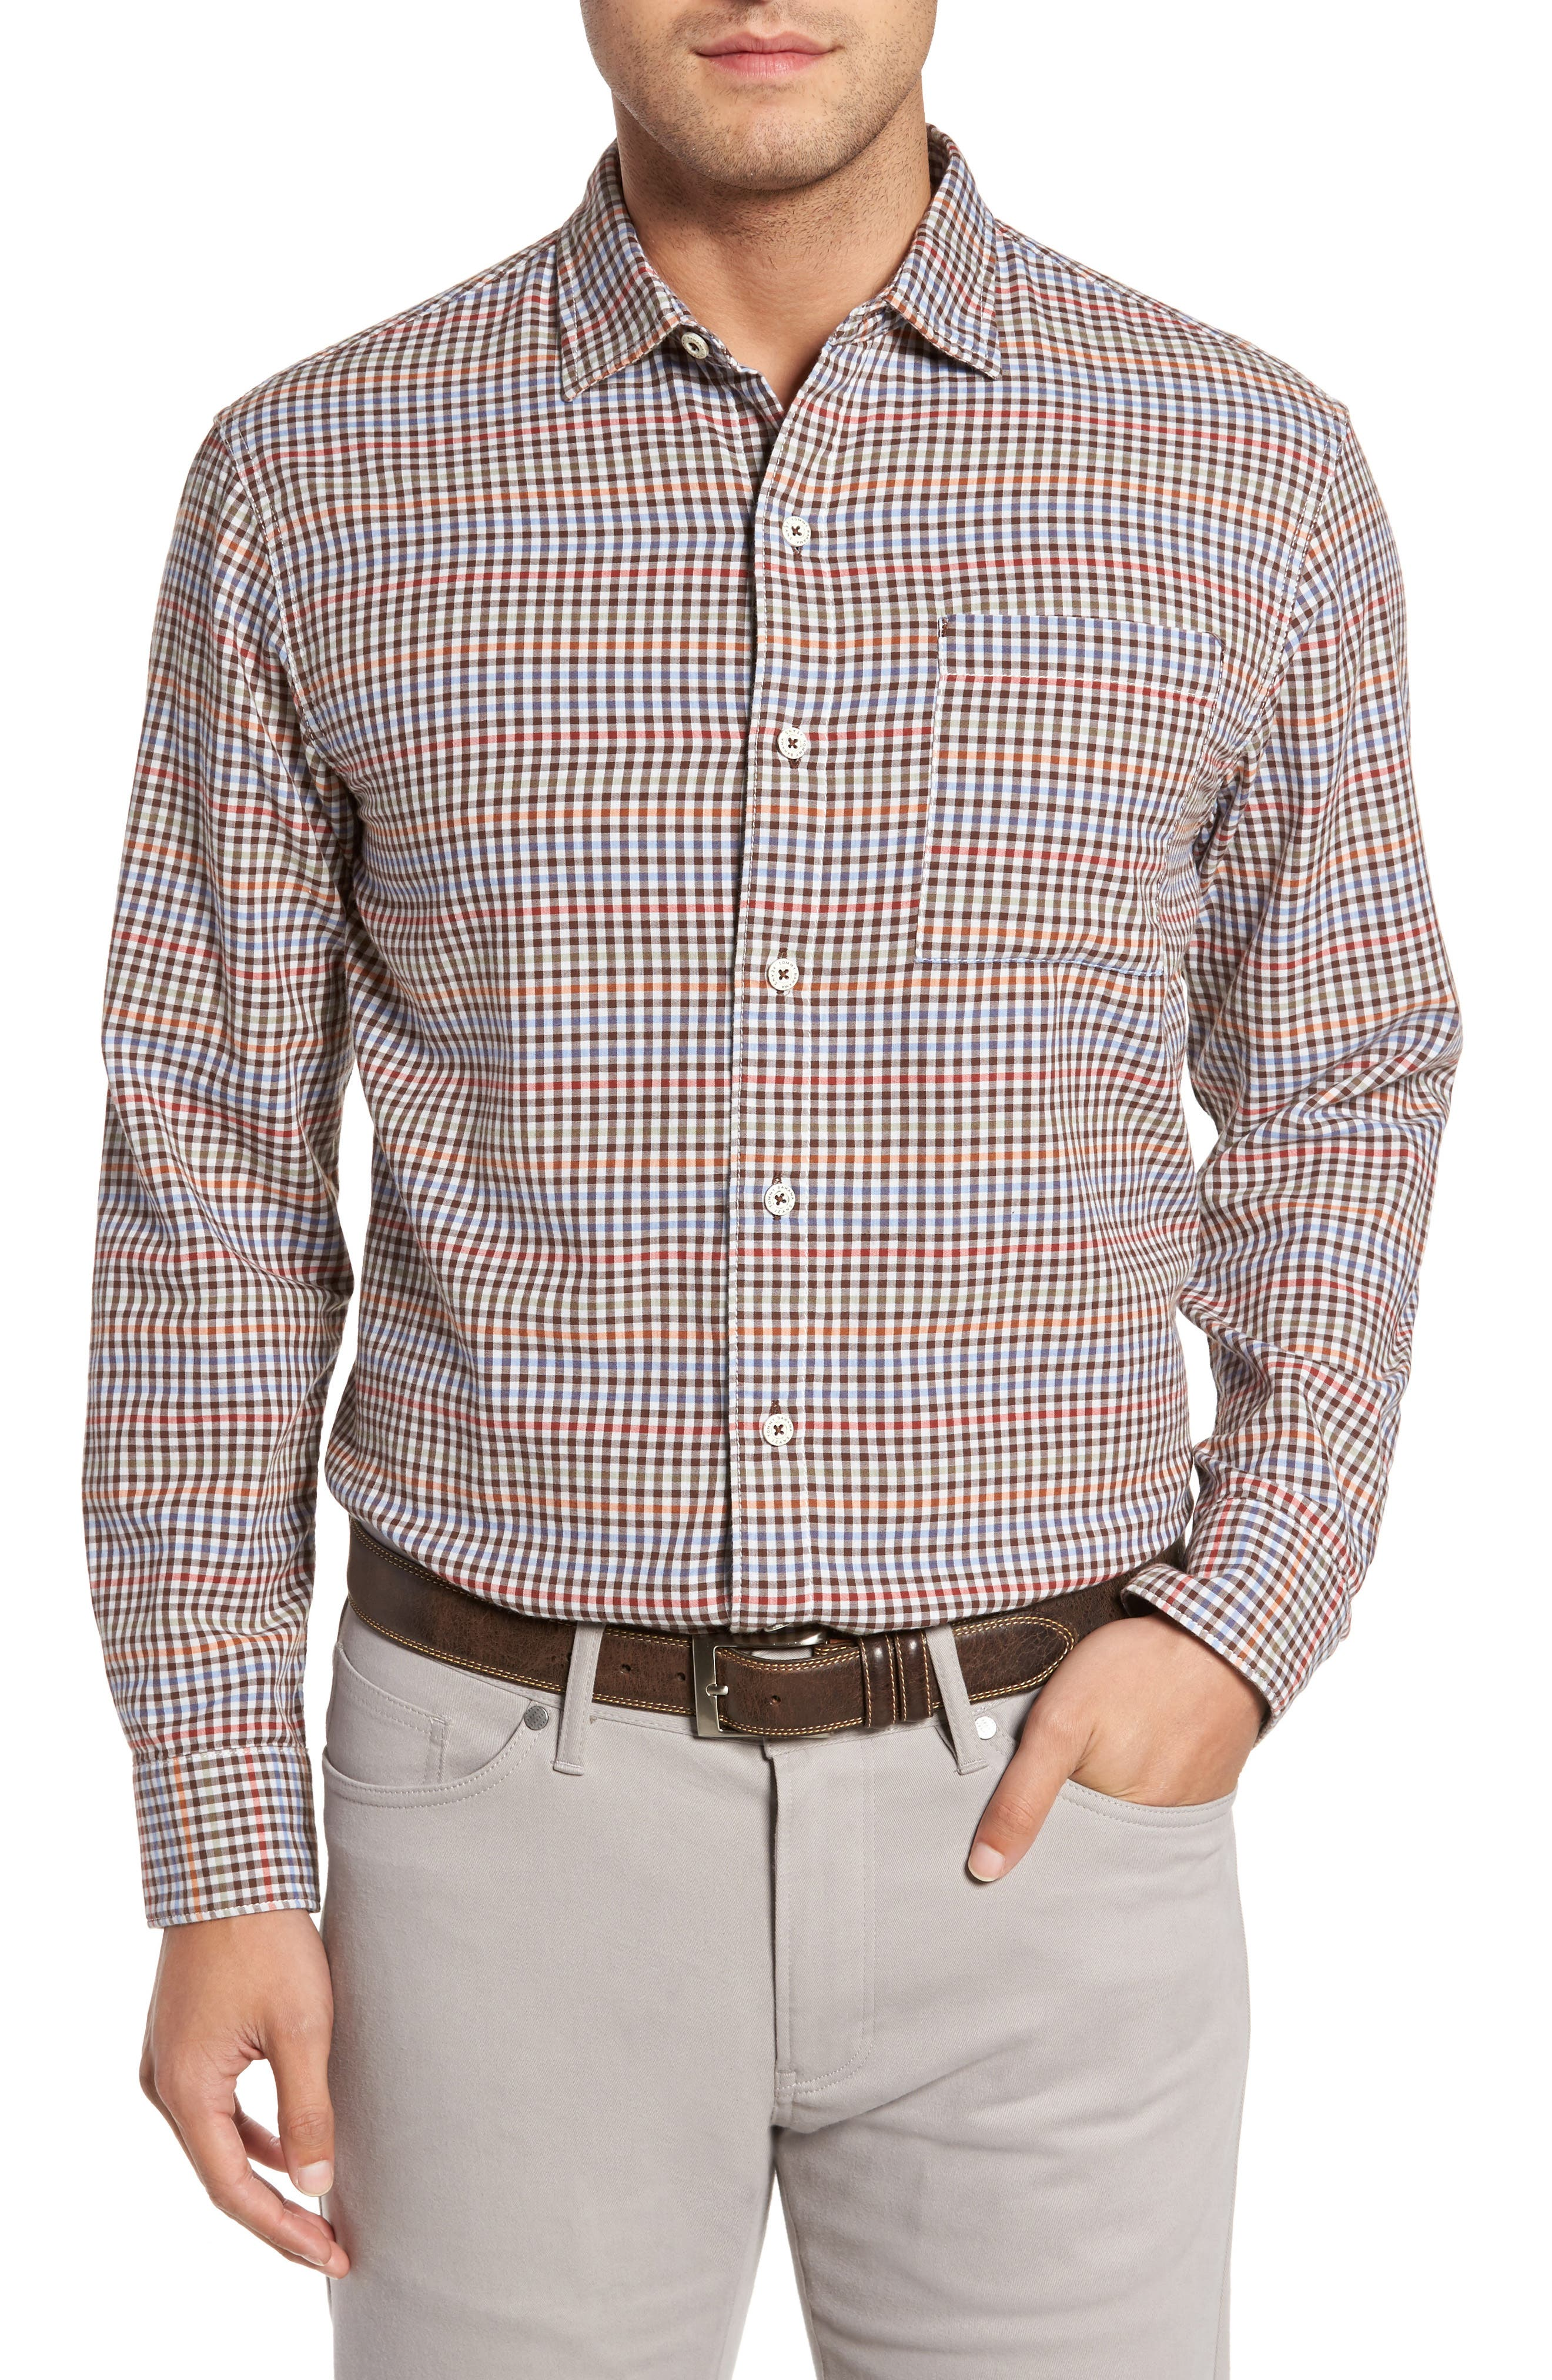 Tan Tan Regular Fit Check Sport Shirt,                             Main thumbnail 1, color,                             Vapor